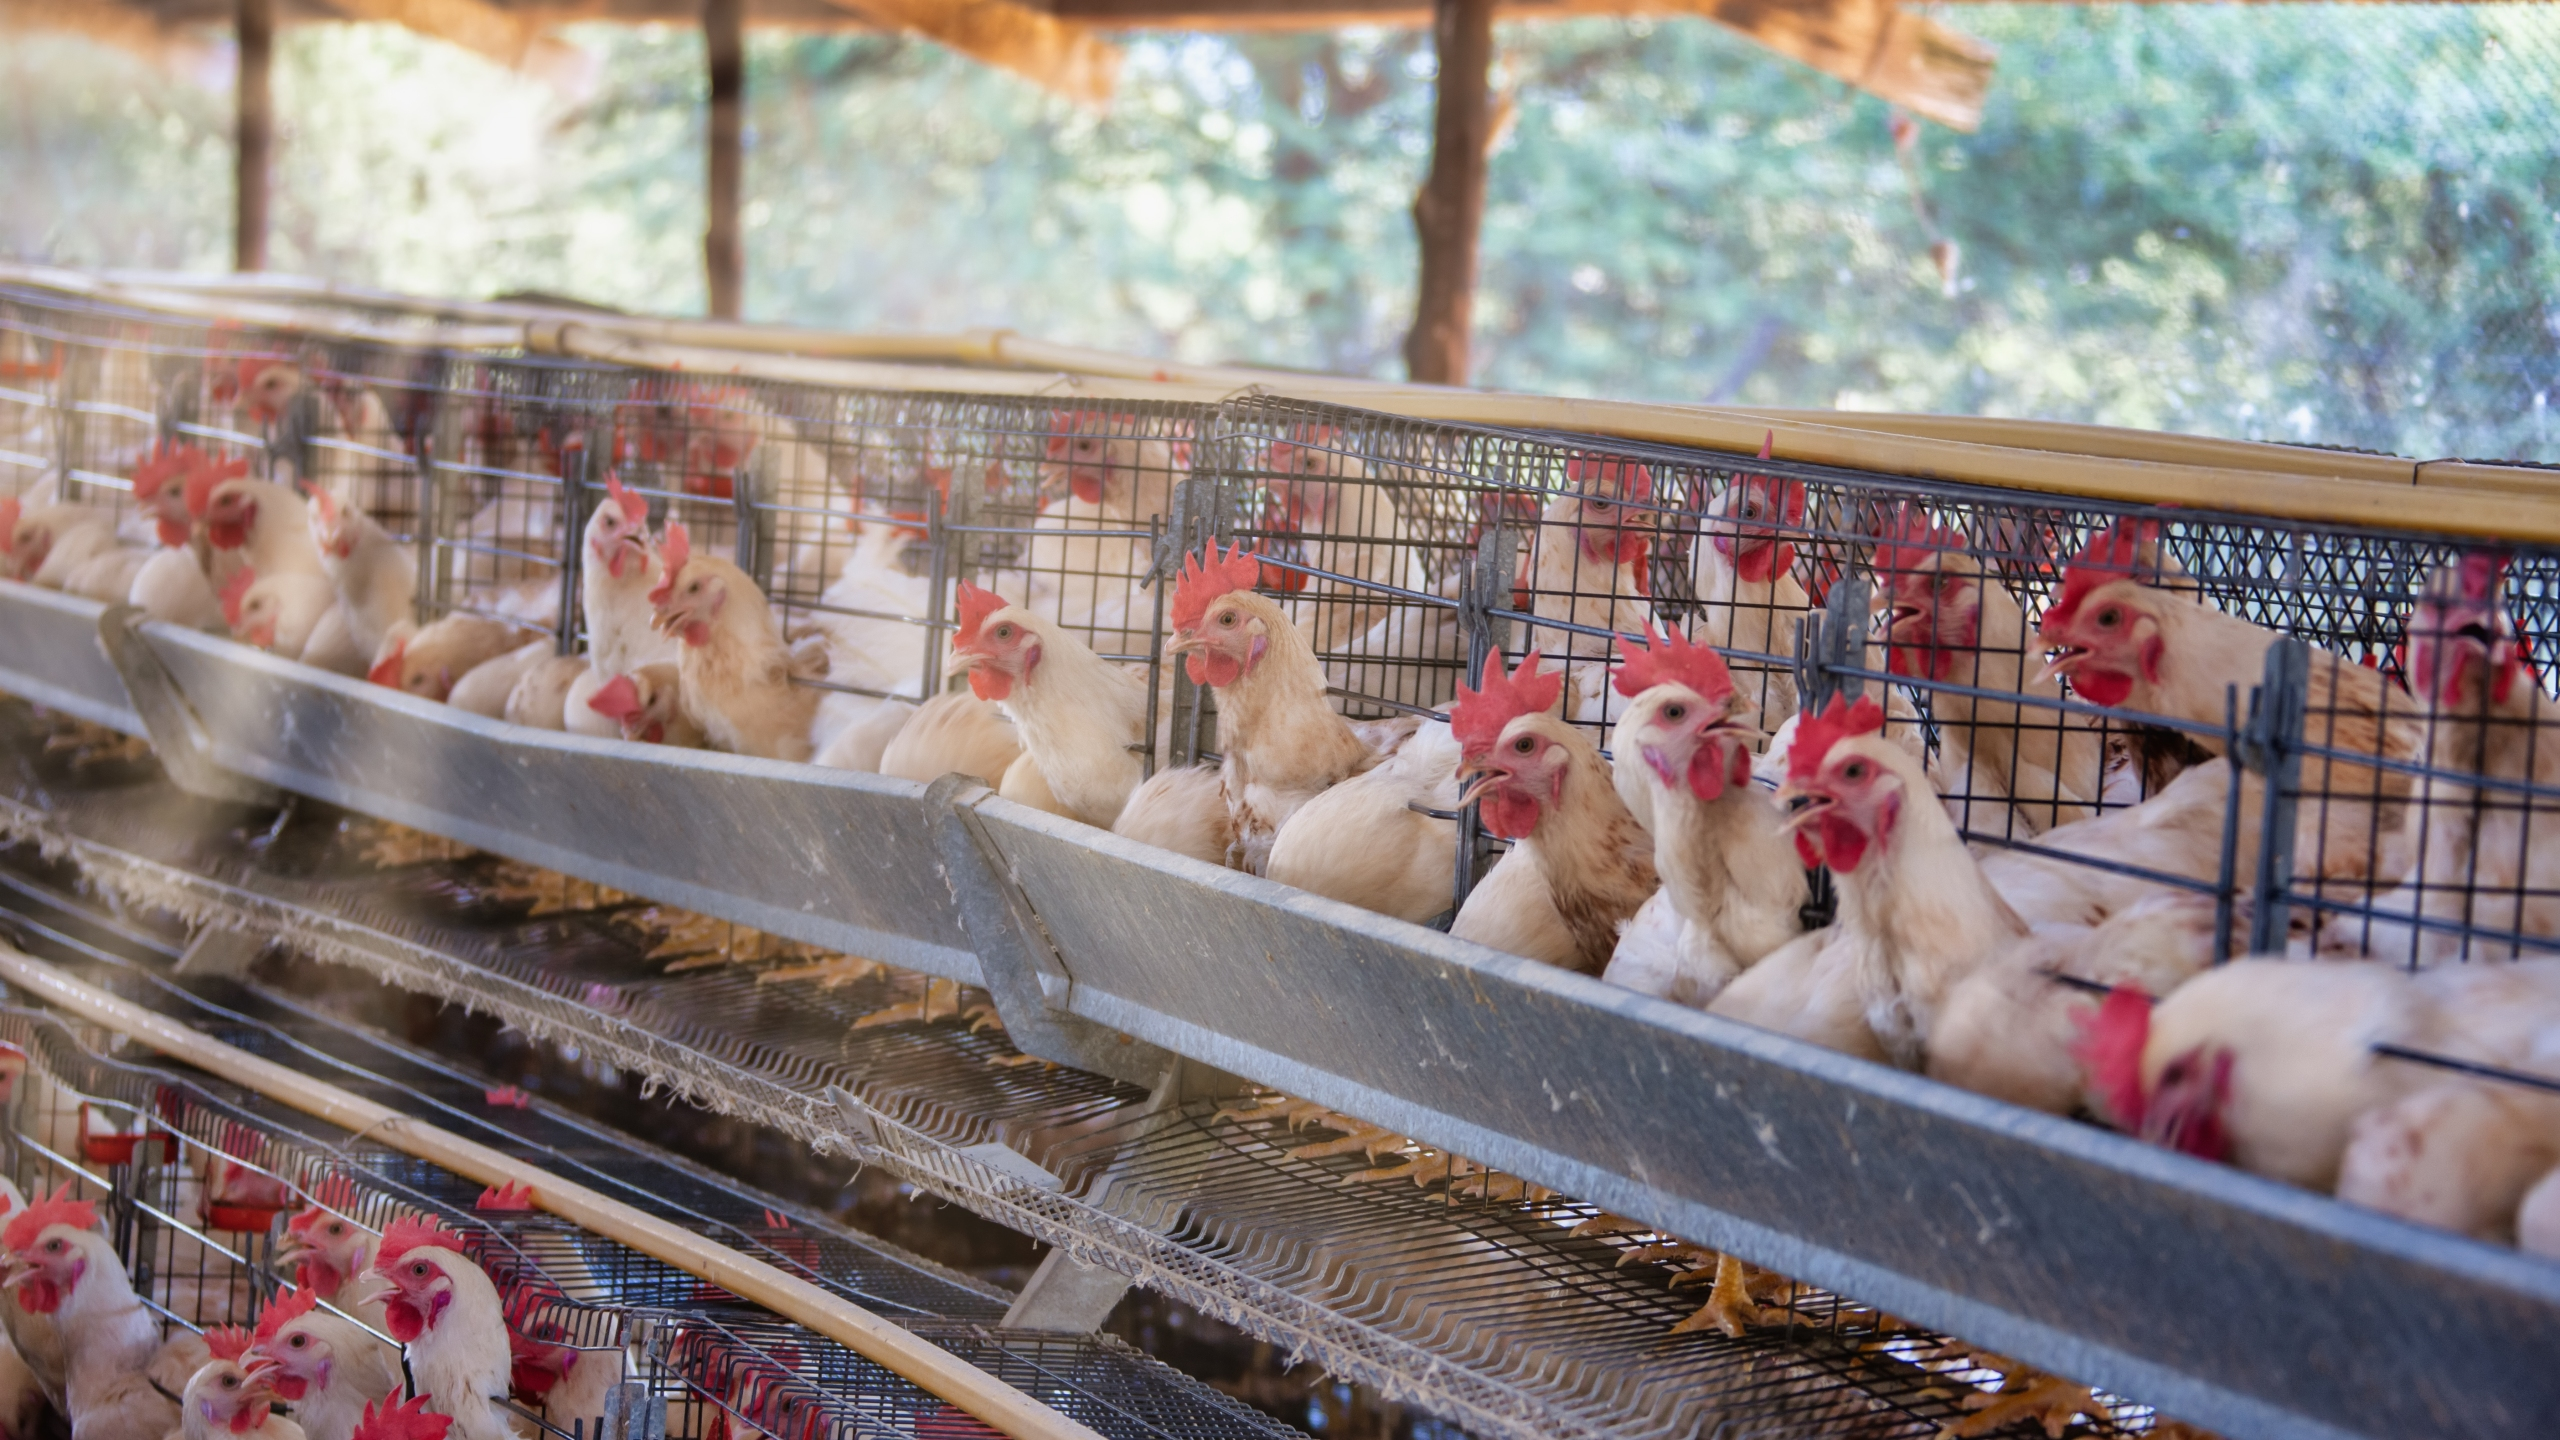 This undated file photo shows hens at an egg farm. (Getty Images)